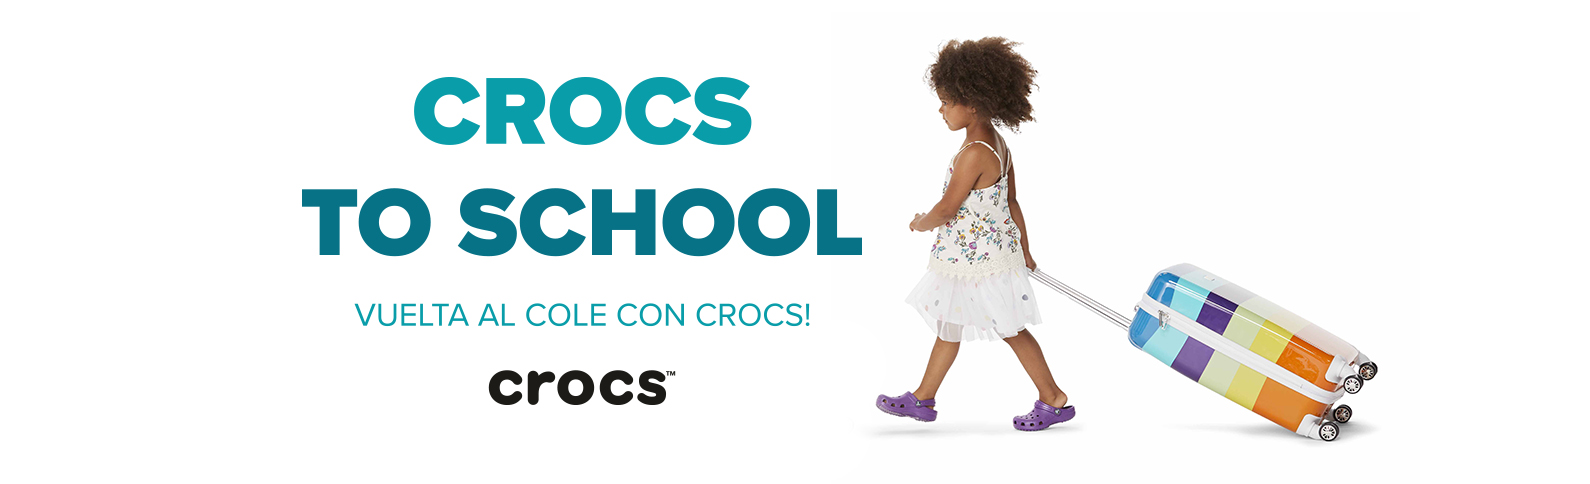 Crocs to School